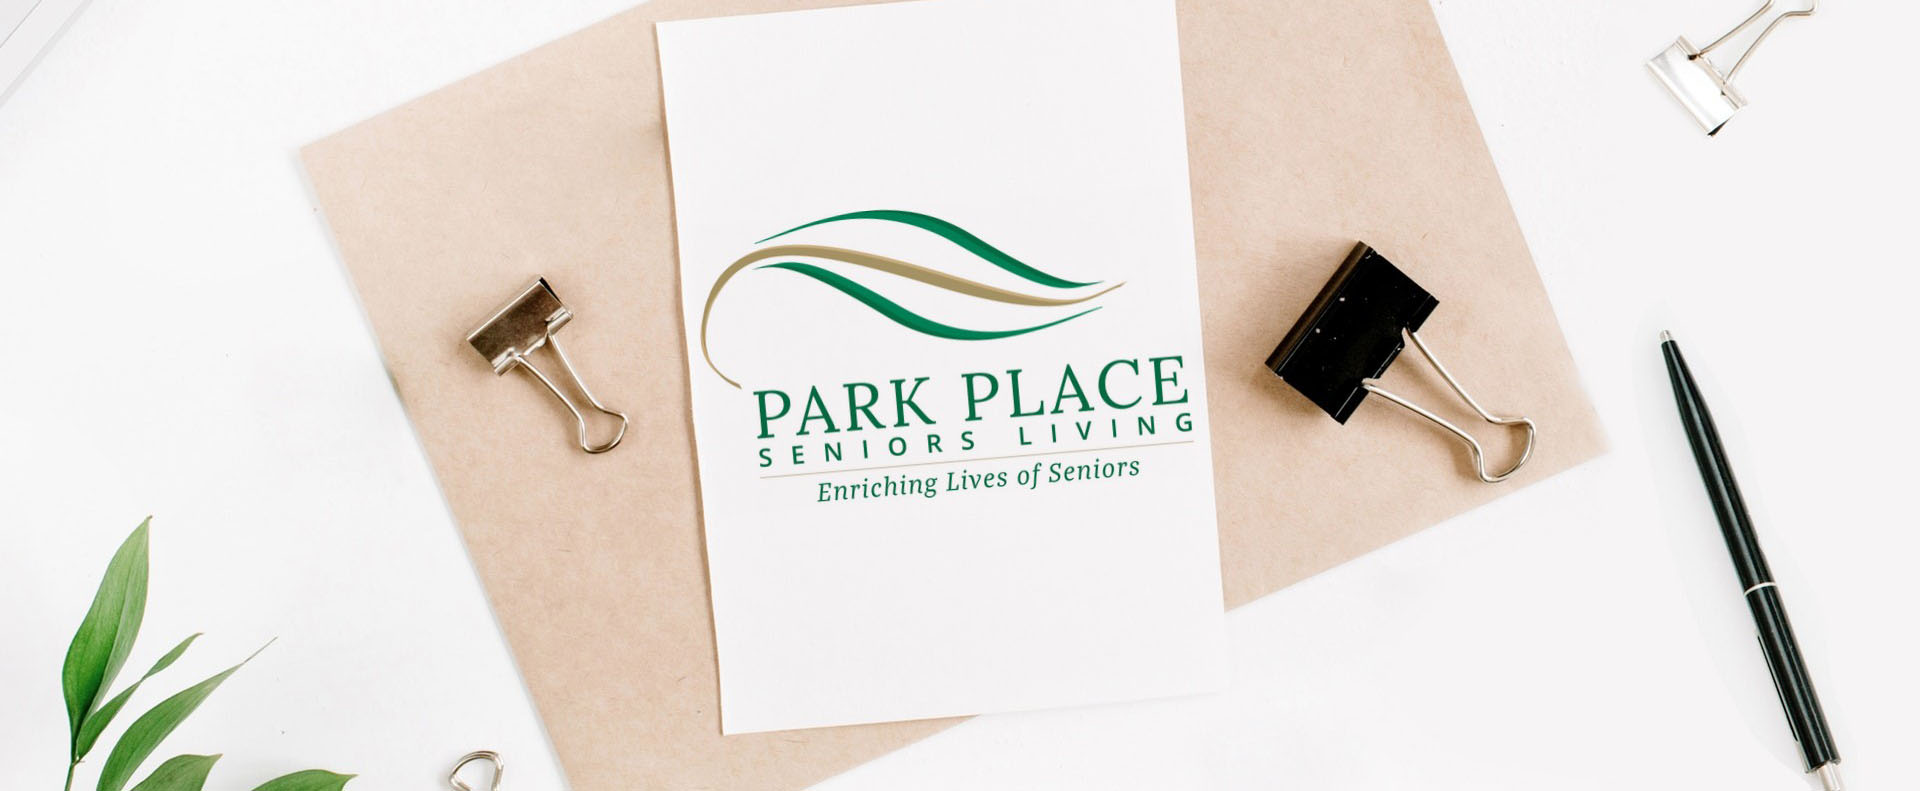 Park place logo printed on paper - White Canvas Design